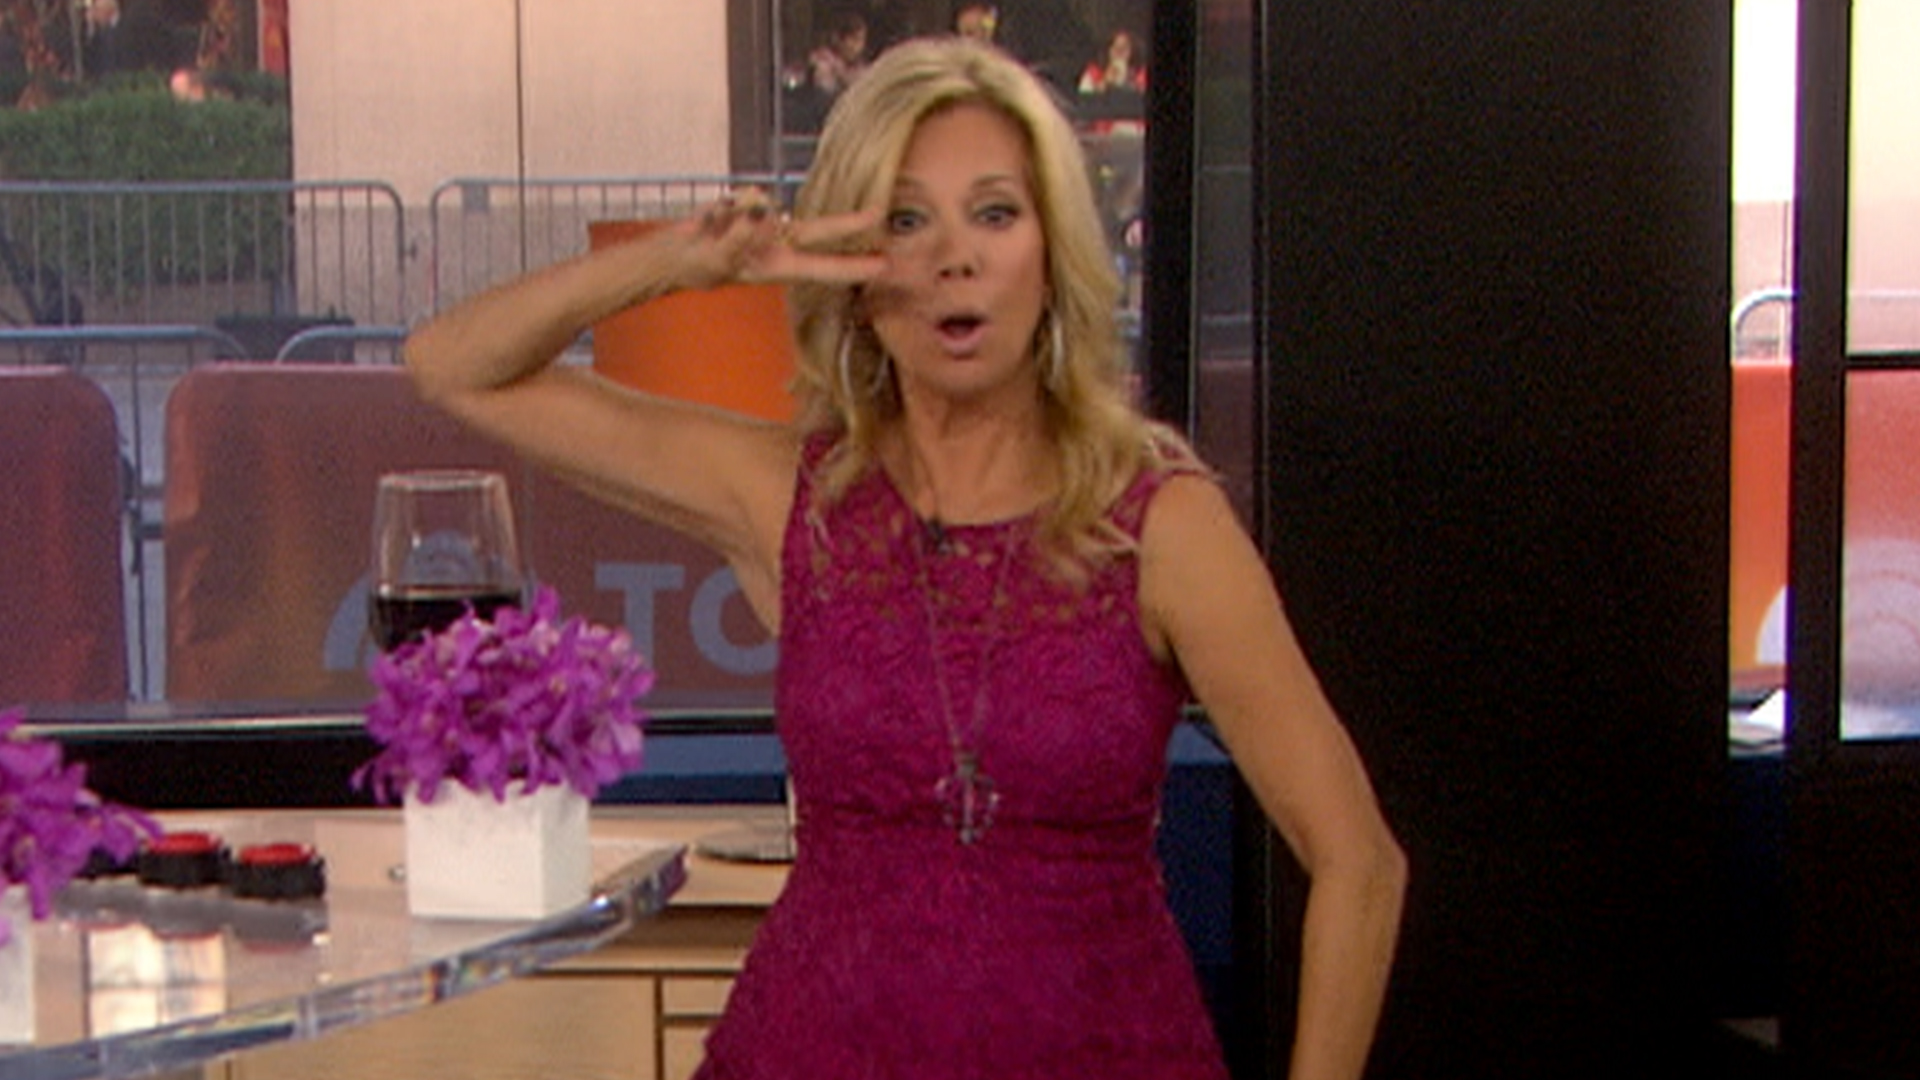 gifford chat Official website of host, actress, singer, songwriter, playwright, and author kathie lee gifford current co-host of the today show along with hoda kotb, previous co-host of regis and kathie lee.